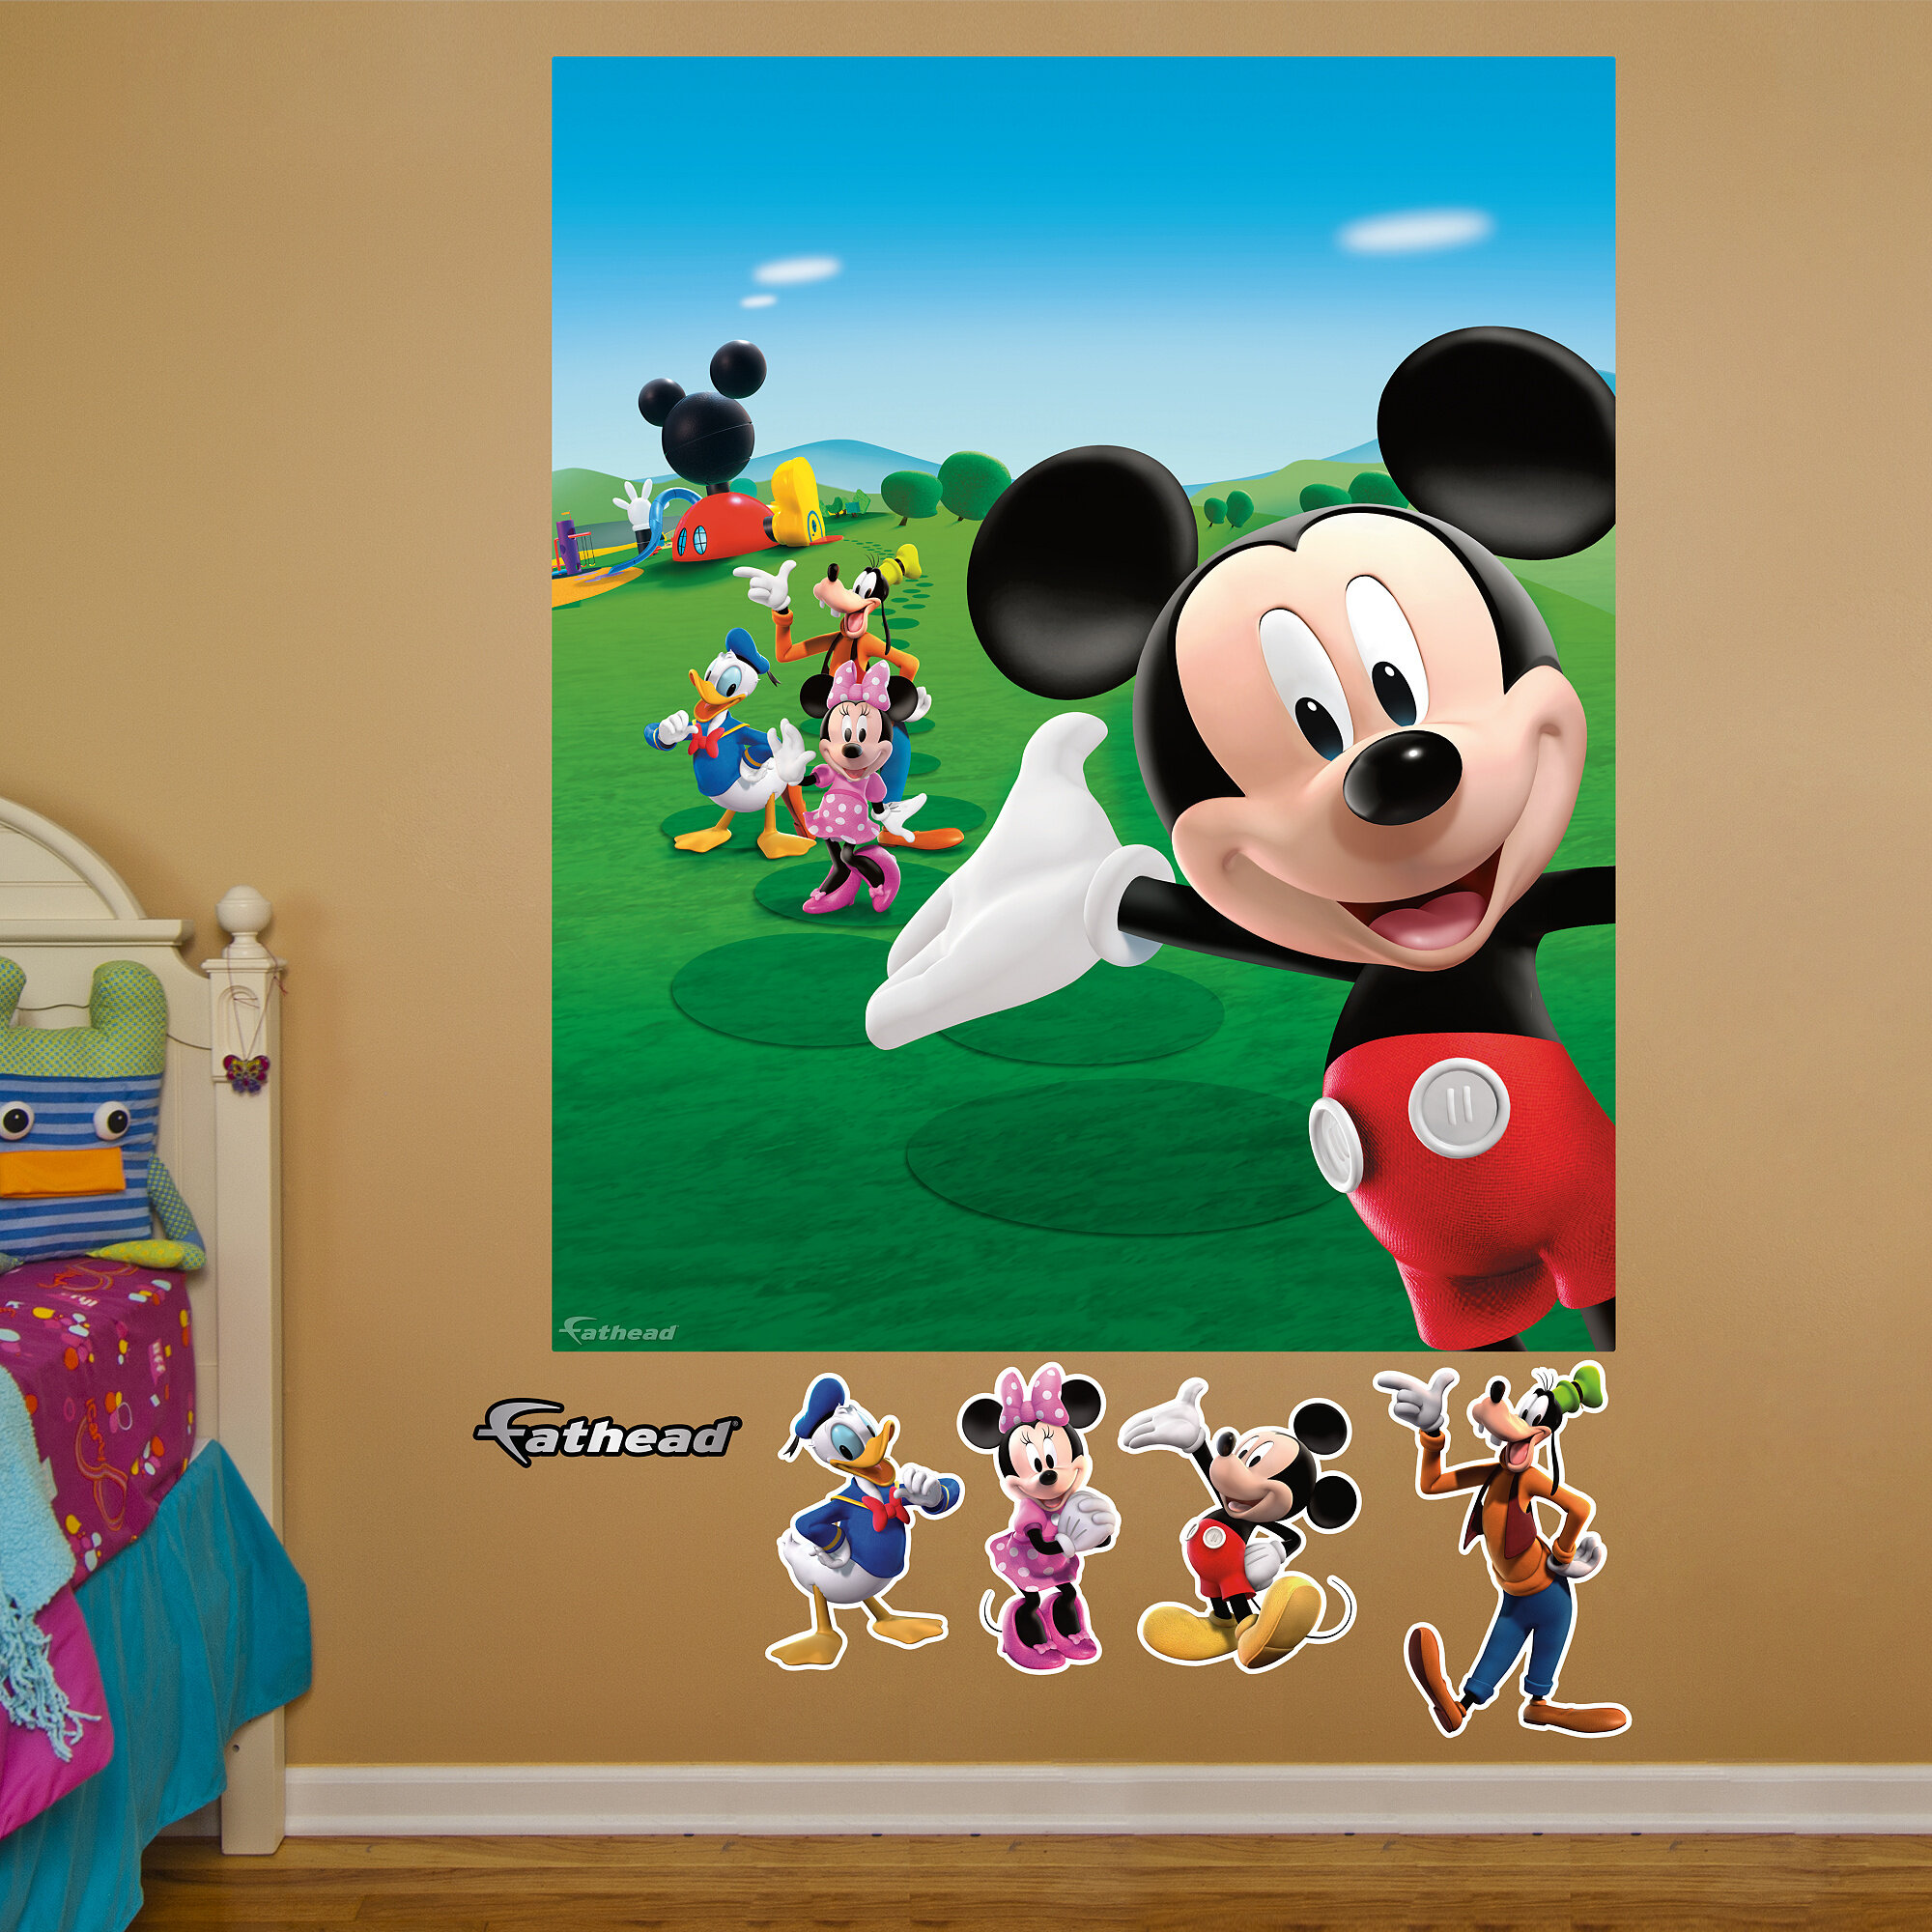 Massive Wall Poster//Picture//Art 04 Mickey Mouse